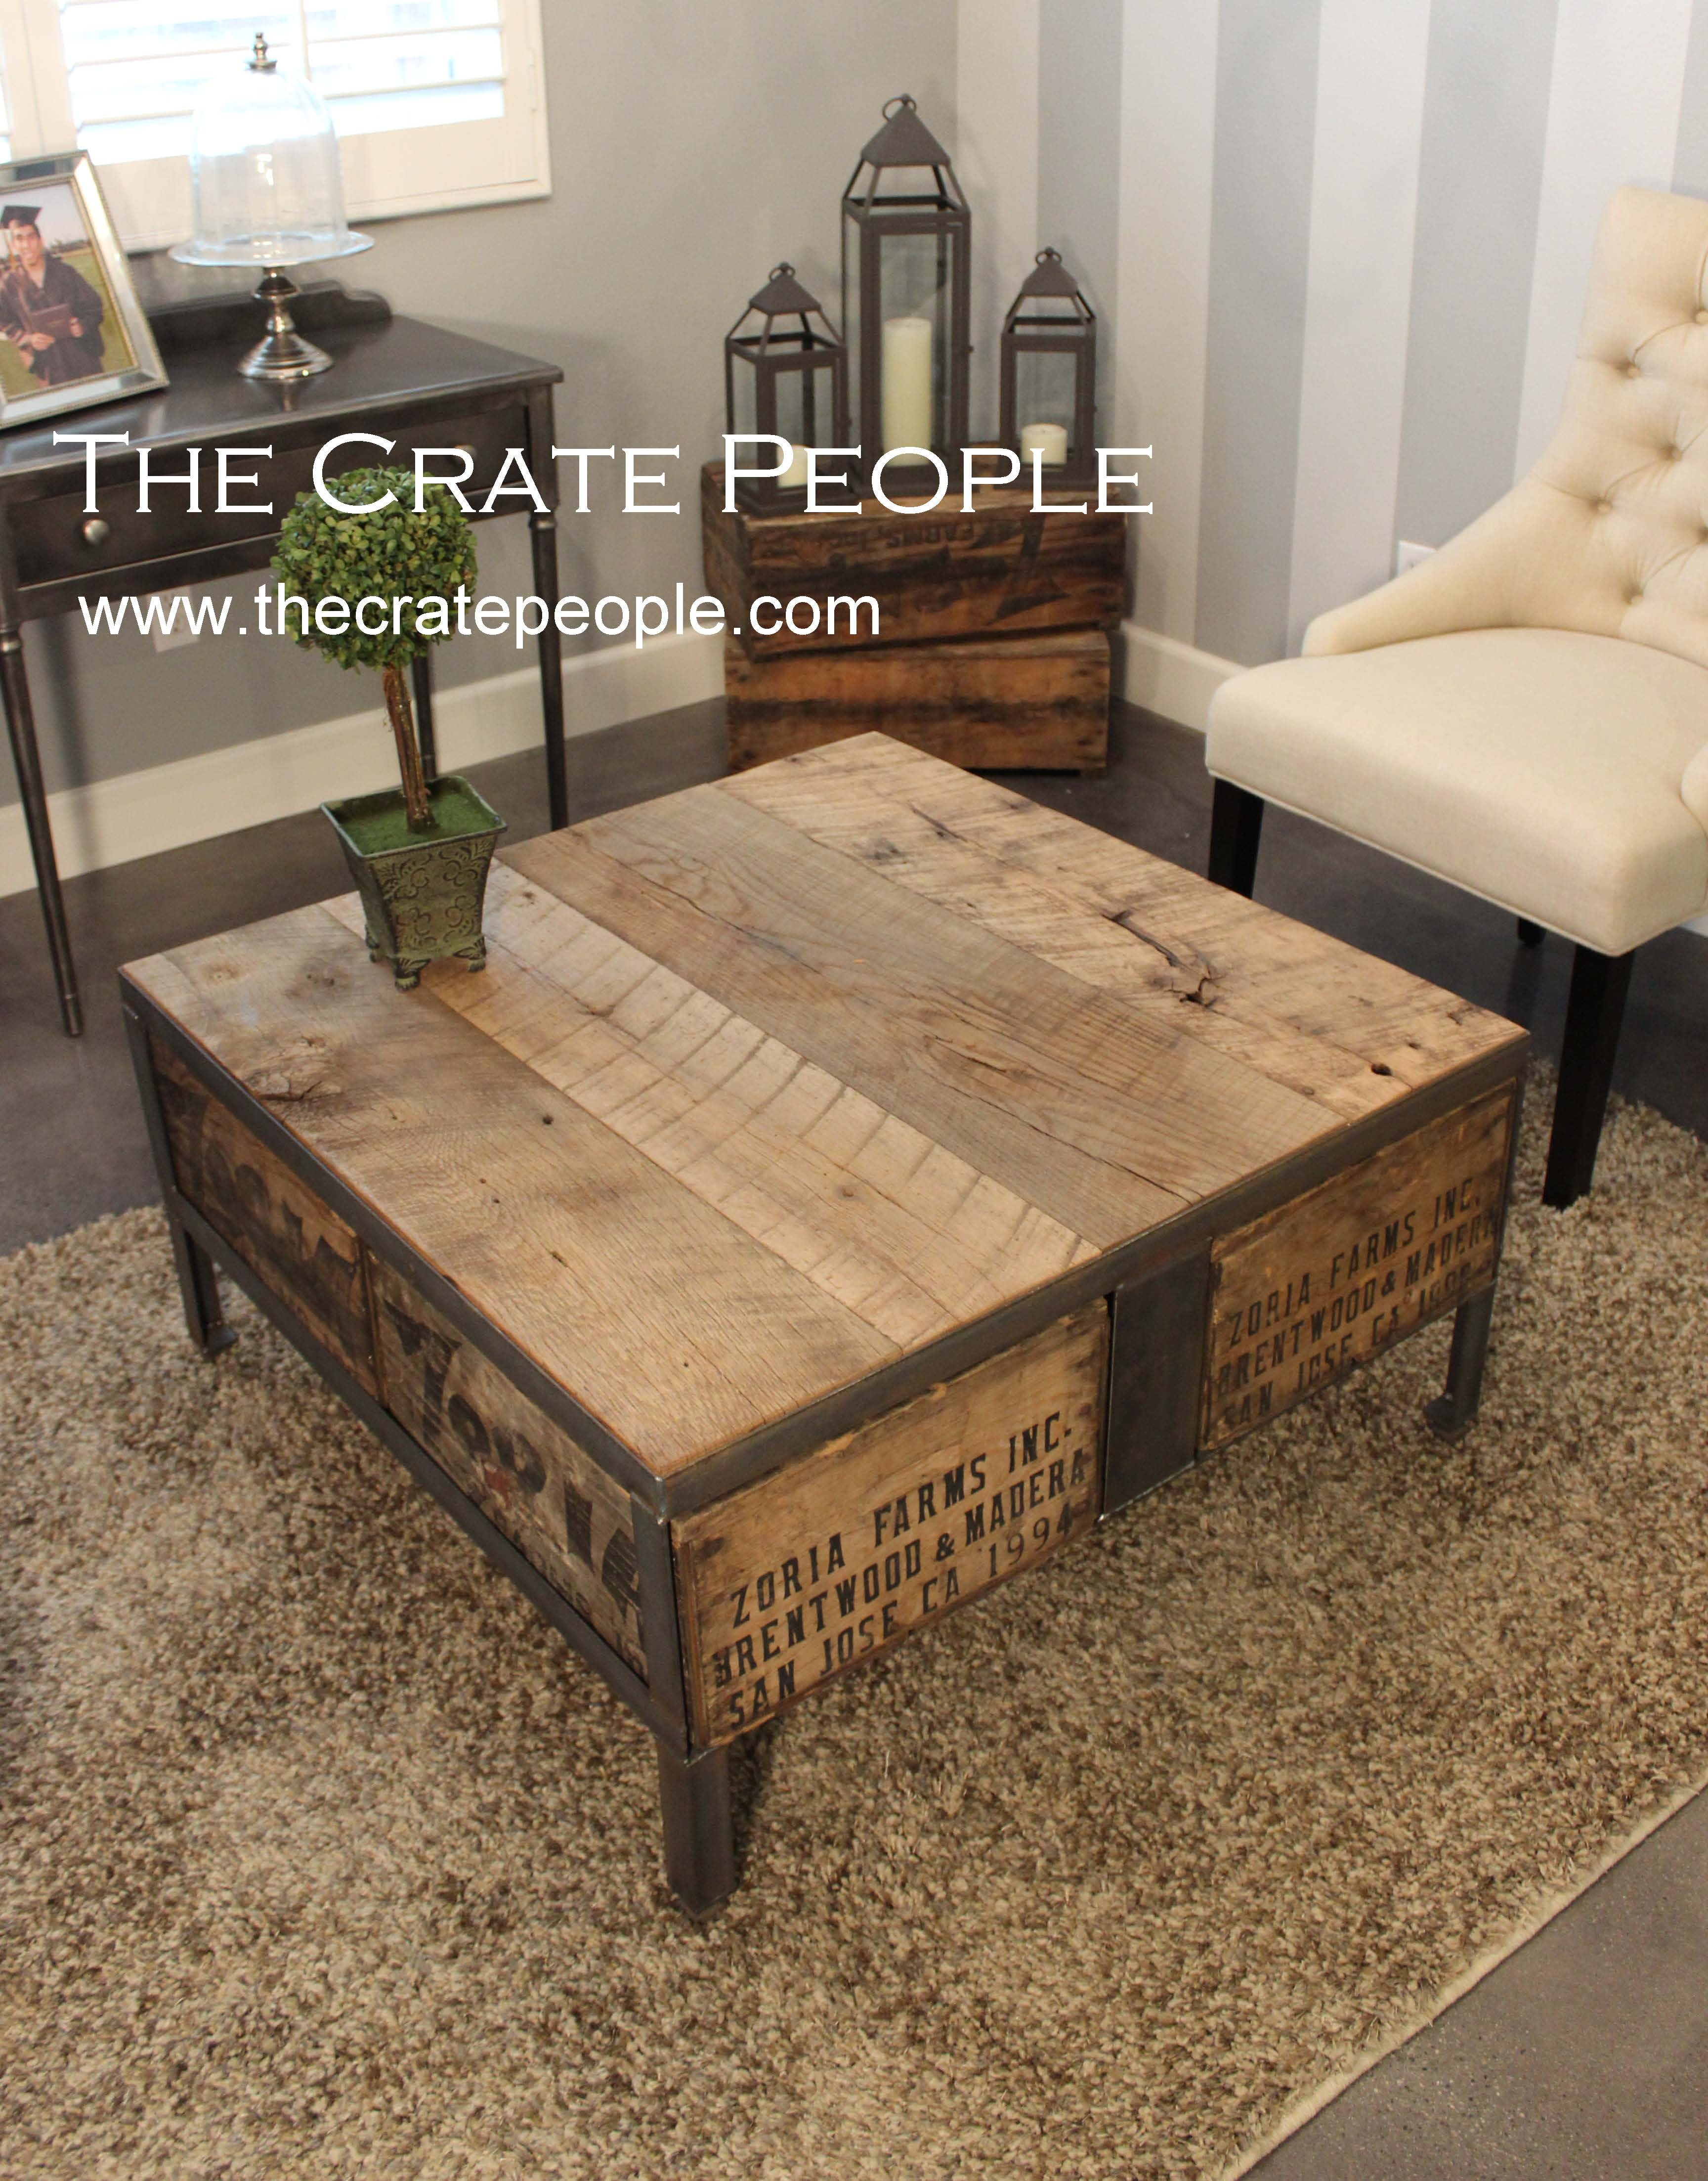 The 36″ Square ZORIA Farms Coffee Table